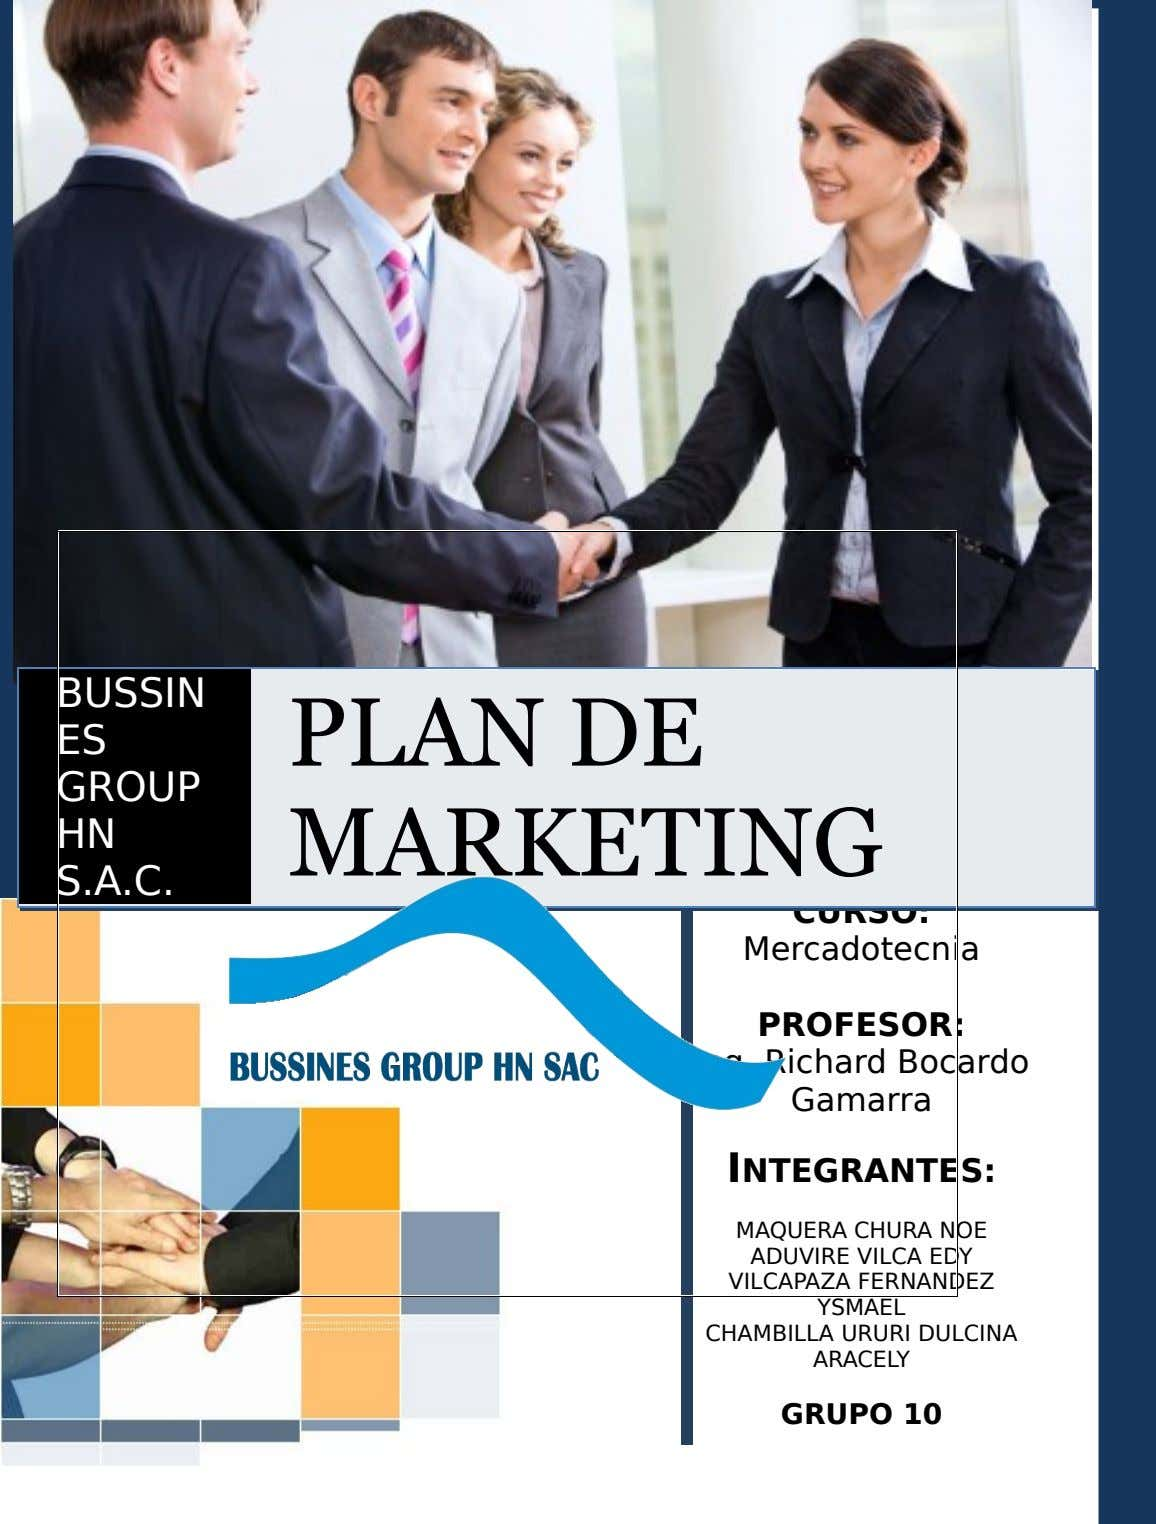 BUSSIN ES GROUP HN PLAN DE MARKETING S.A.C. CURSO: Mercadotecnia PROFESOR: Ing. Richard Bocardo Gamarra